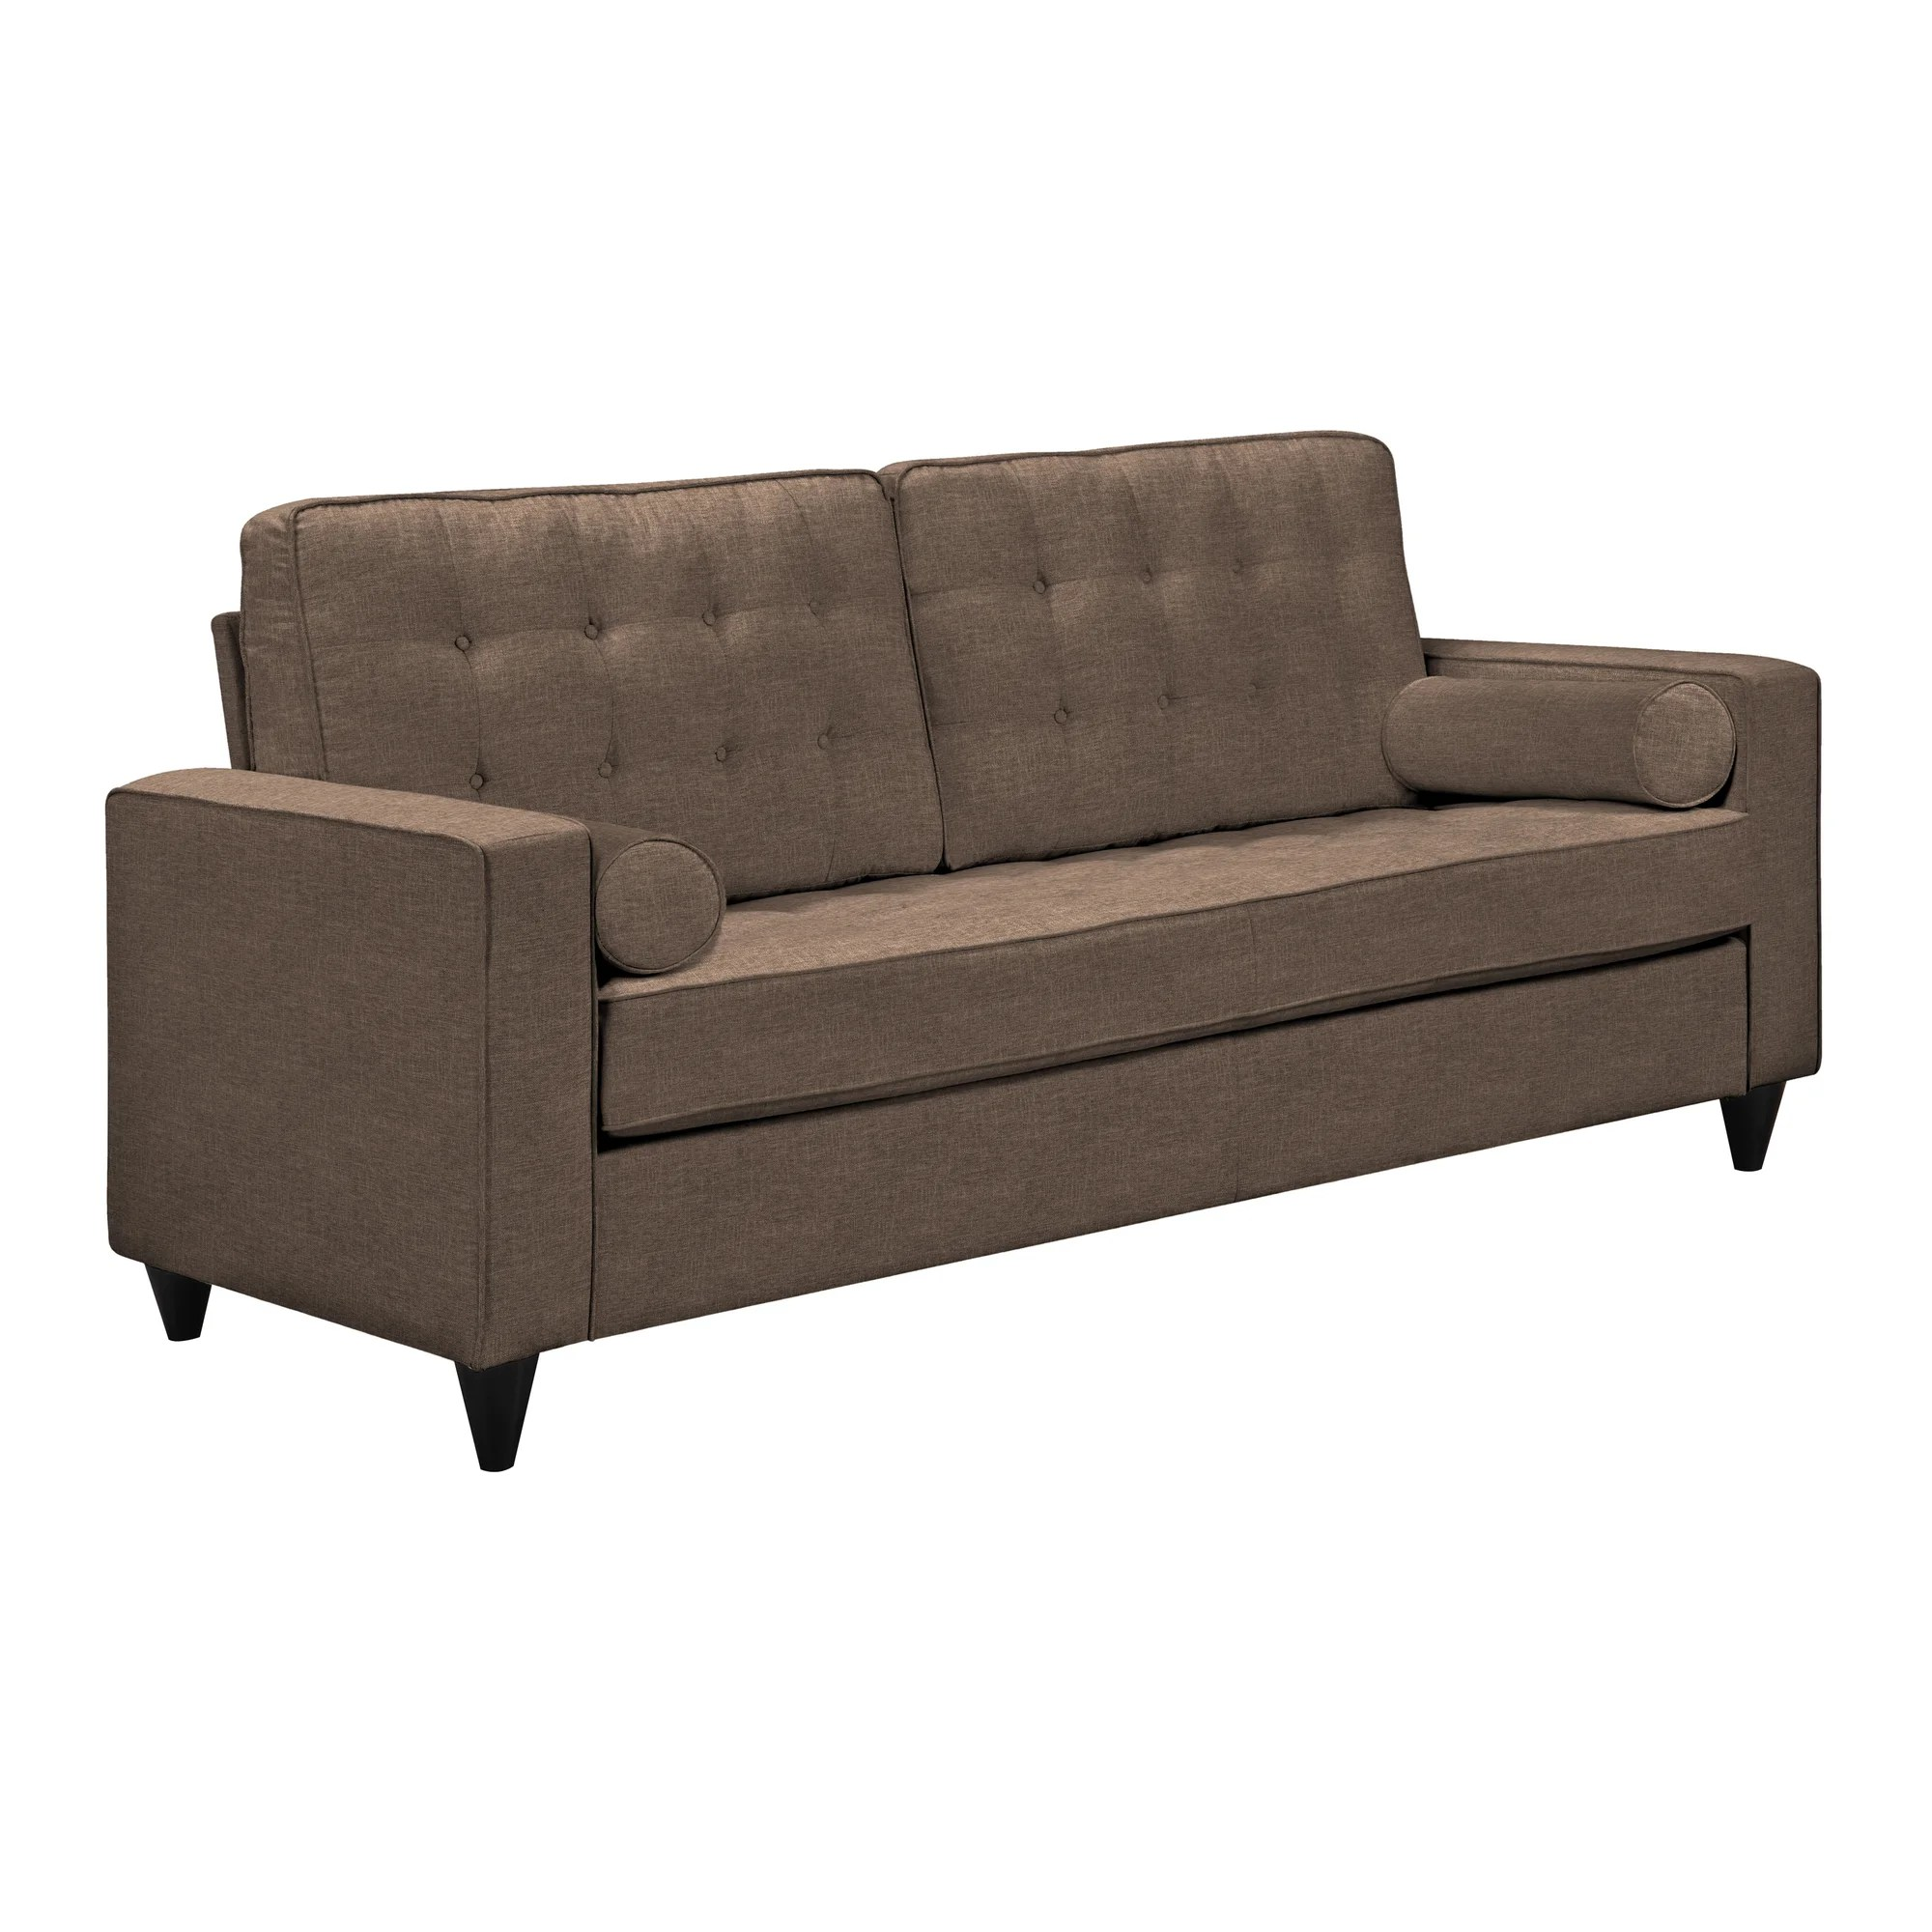 sterling sofa corner sofas on finance no deposit angelo home sofast convertible